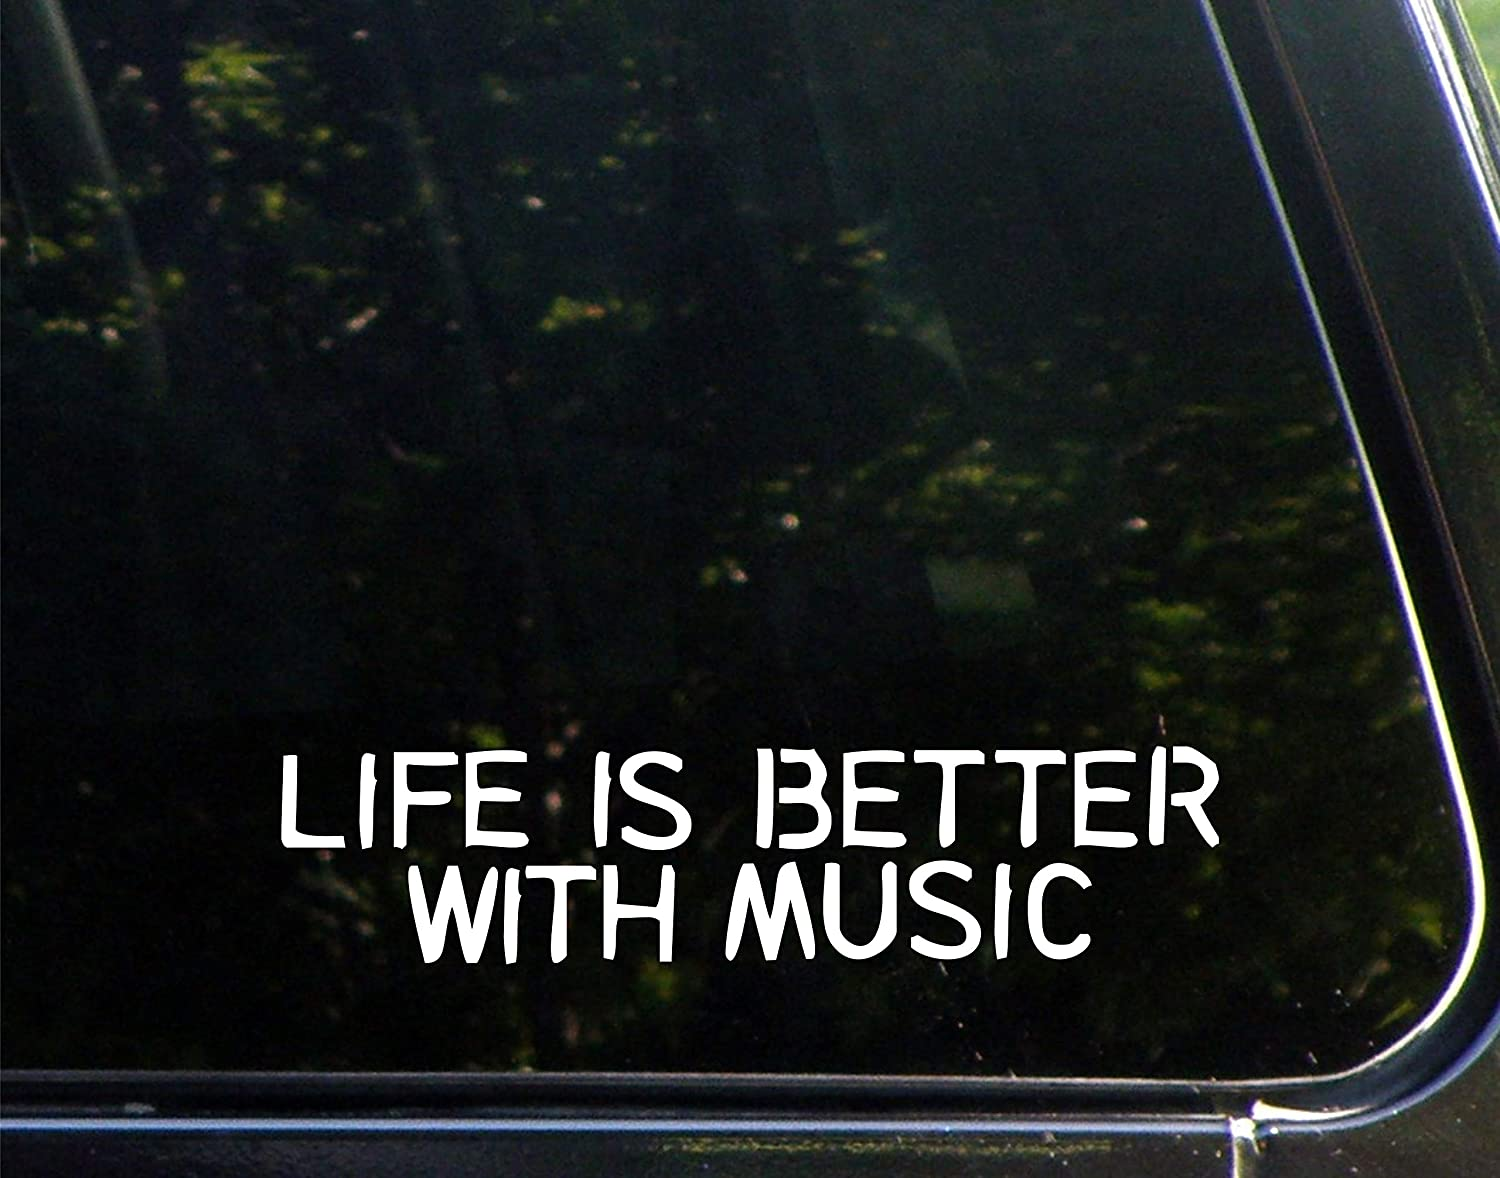 "Life is Better with Music - 9"" x 2"" - Vinyl Die Cut Decal/Bumper Sticker for Windows, Cars, Trucks, Laptops, Etc."